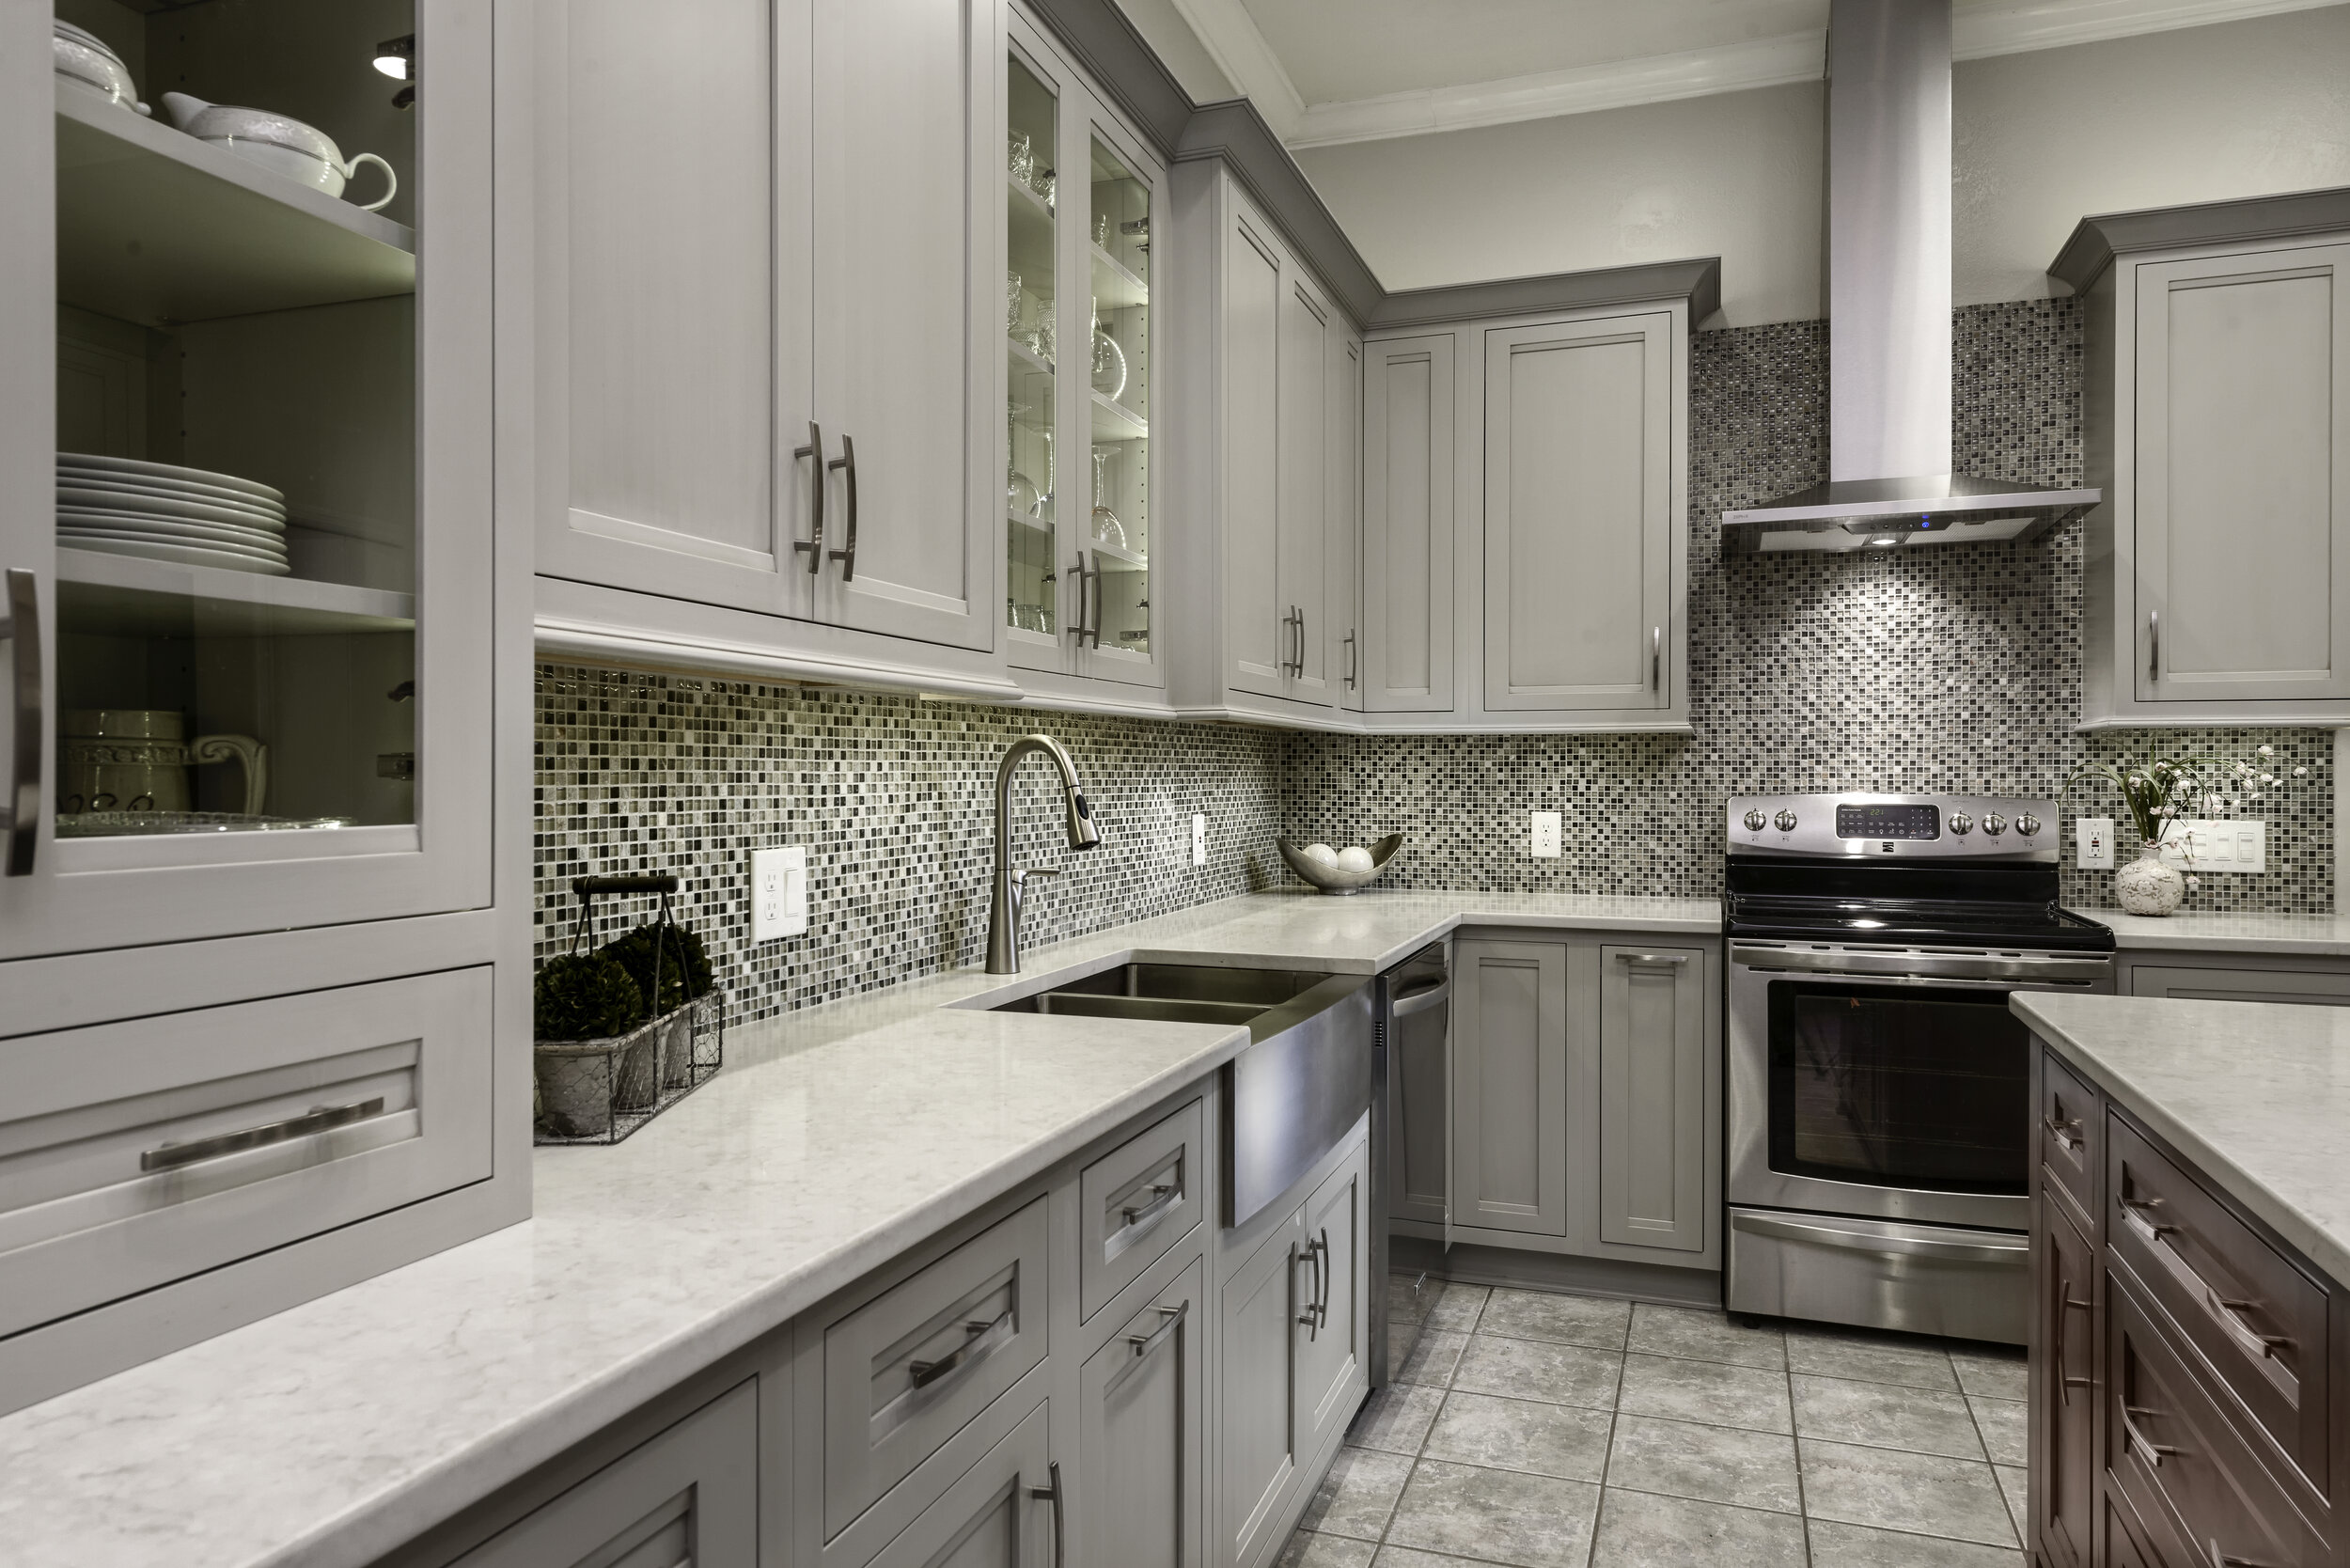 Butler kitchen sink and faucet.jpg